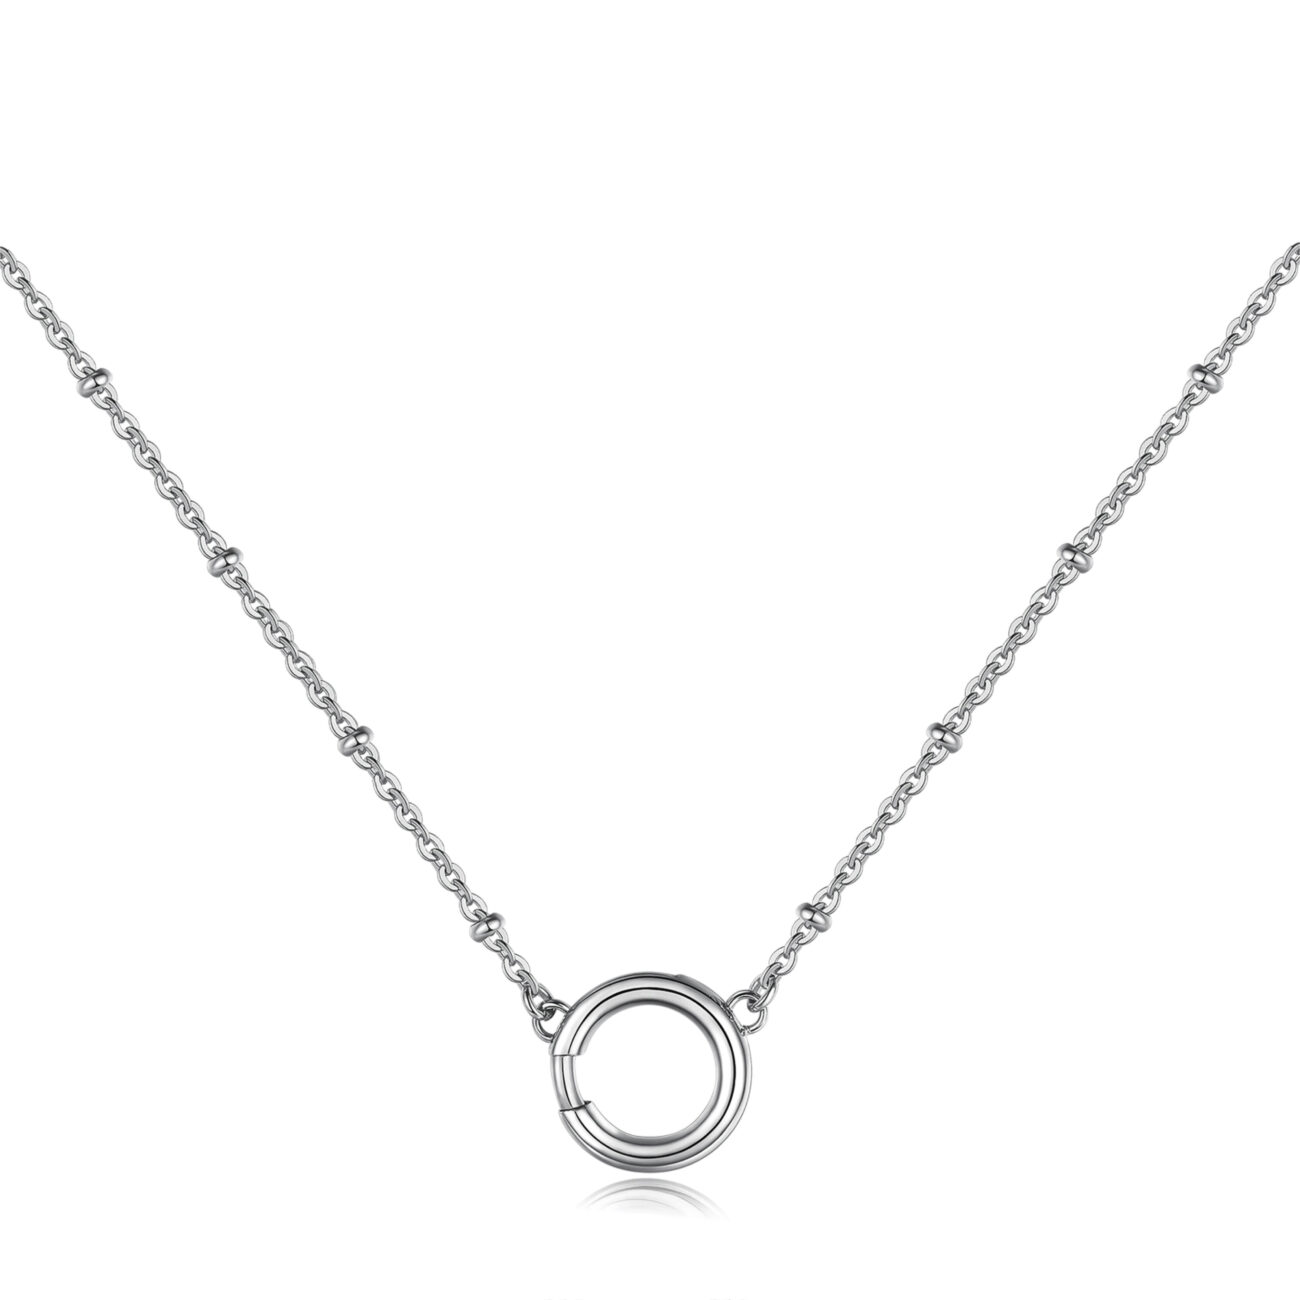 316L stainless steel composable chocker.